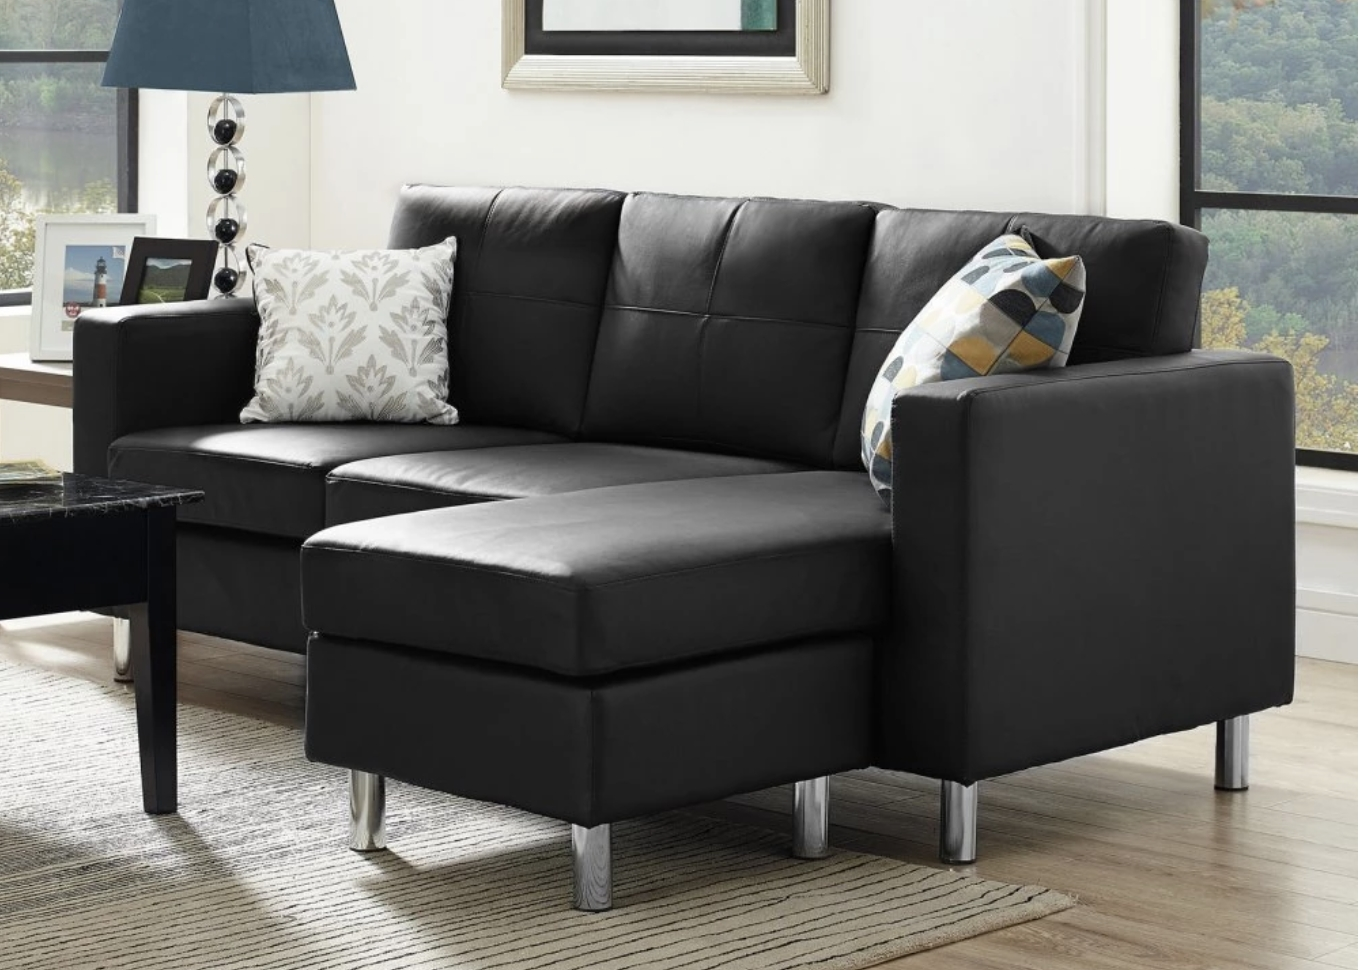 75 Modern Sectional Sofas For Small Spaces (2018) In Most Popular Sectional Sofas That Can Be Rearranged (View 11 of 20)